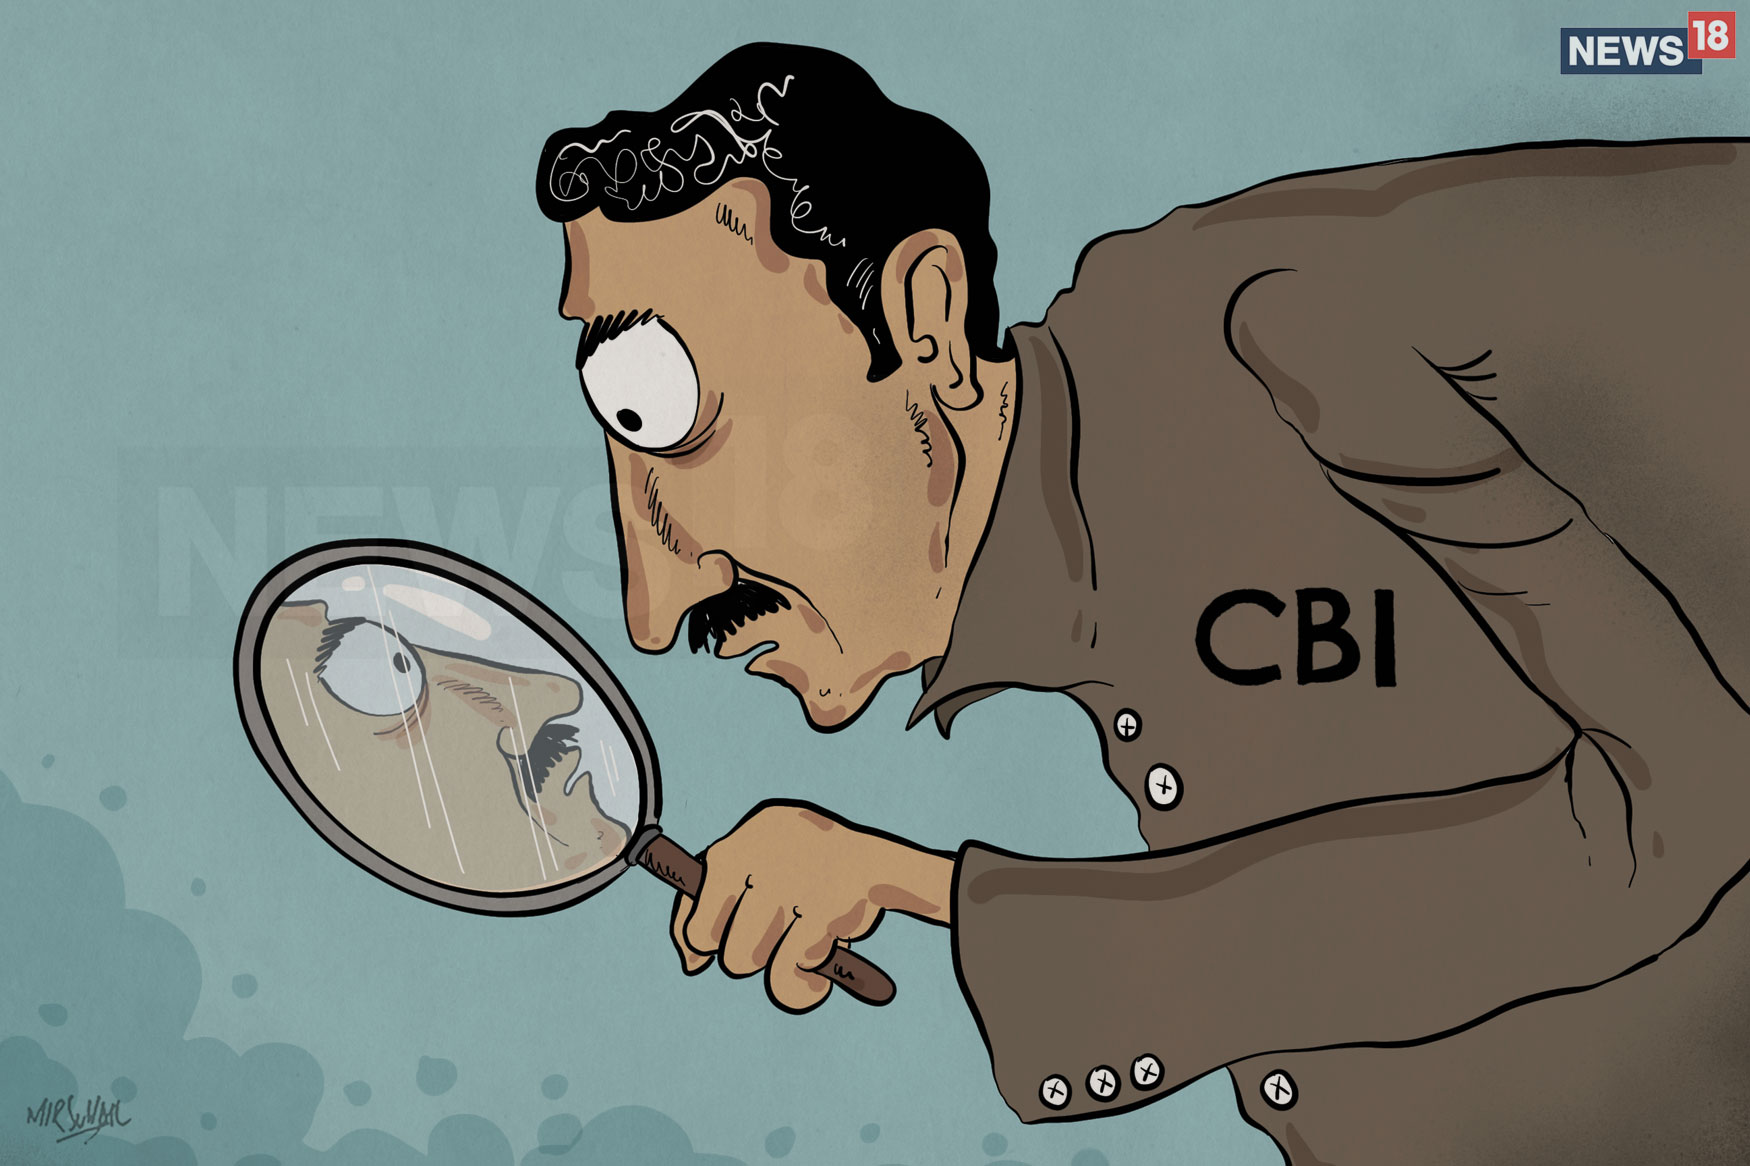 Alok Verma and Rakesh Asthana are still director and special director: CBI